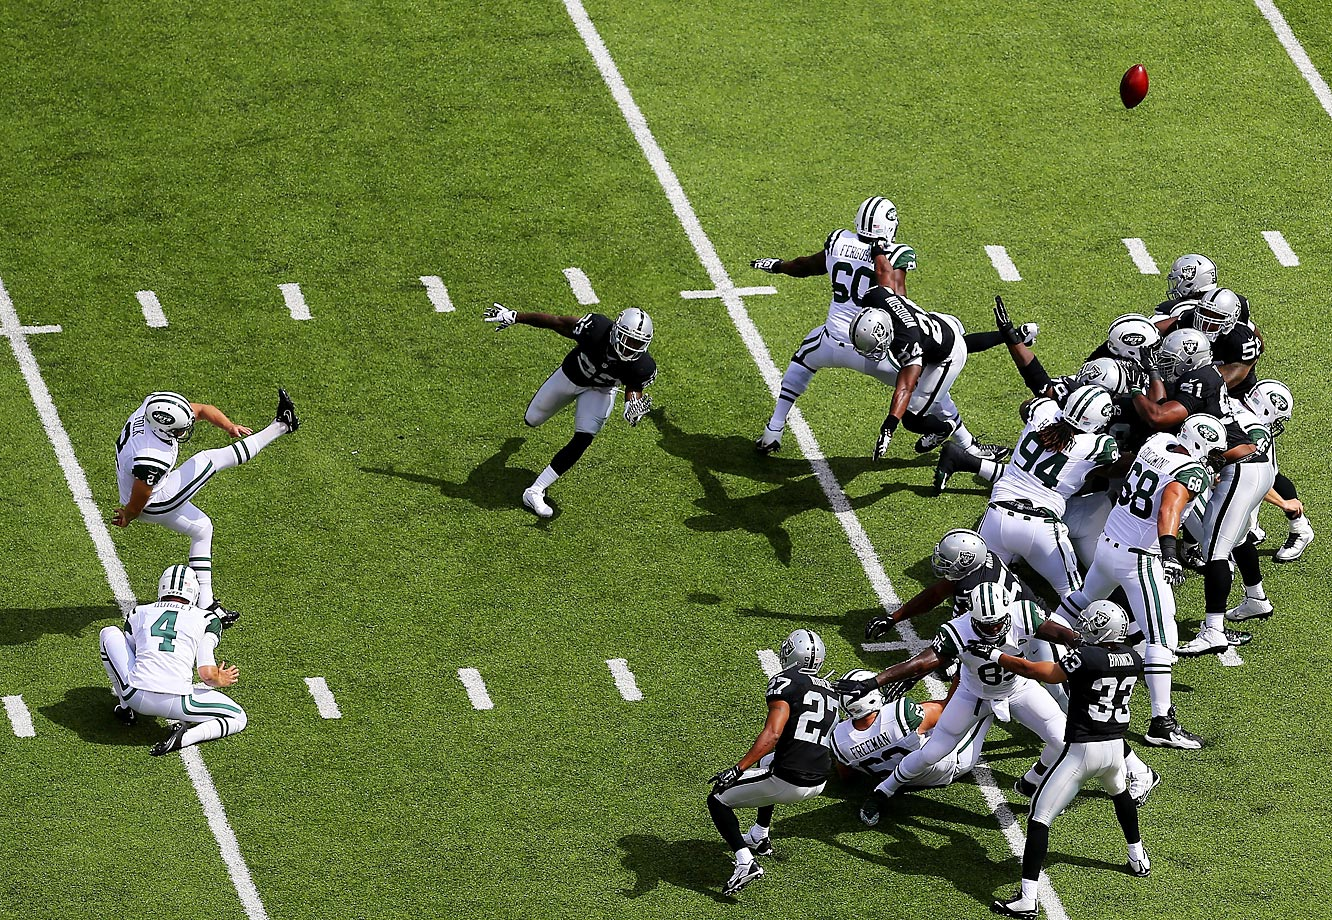 Nick Folk of the New York Jets kicks a field goal against the Oakland Raiders.